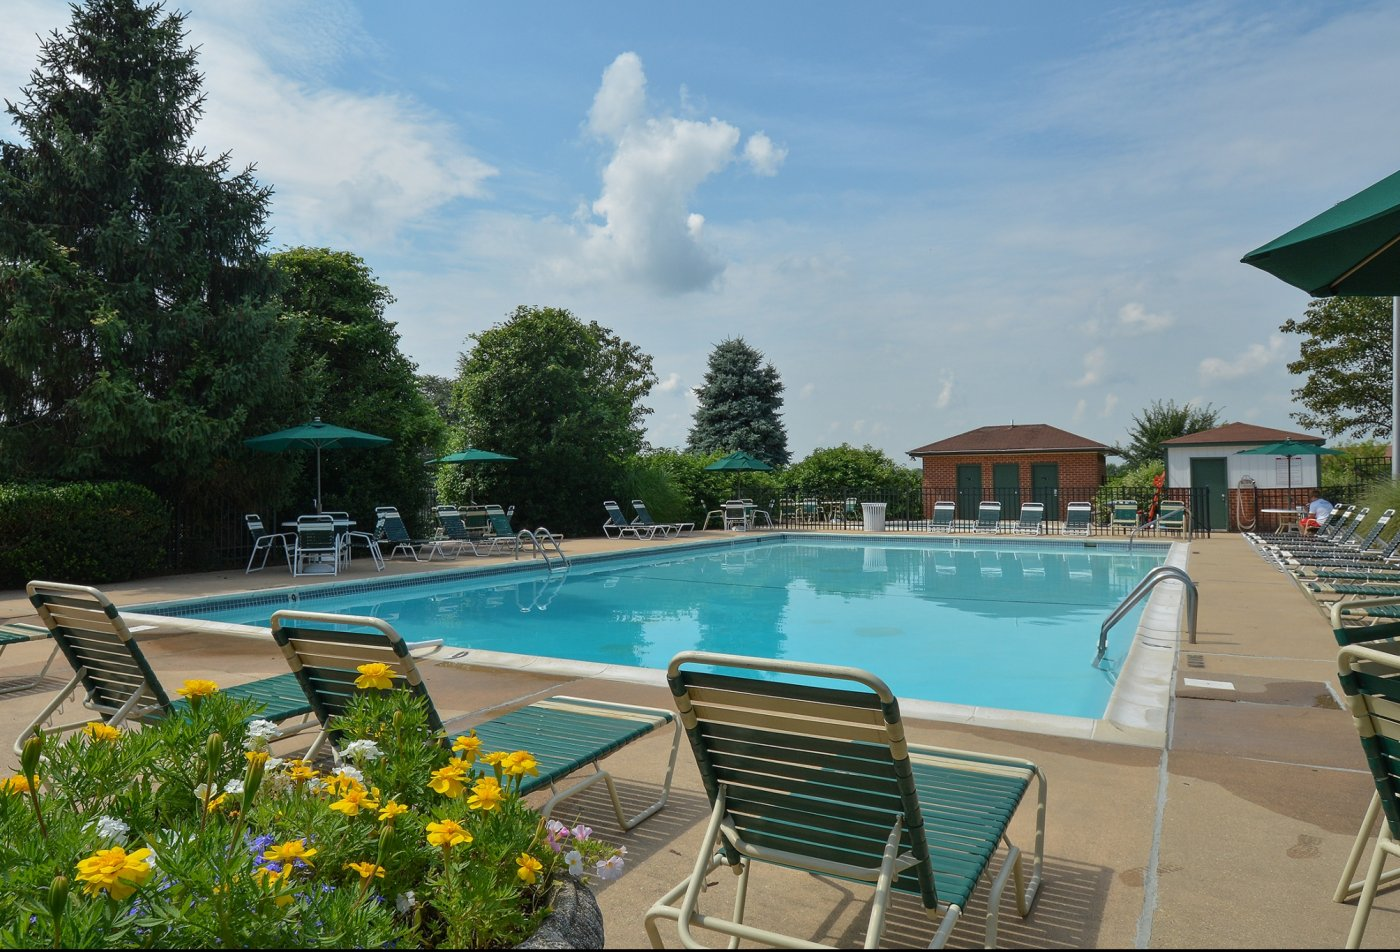 Swimming Pool | Apartment Homes in Wilmington, DE | Fairway Park Apartments & Townhomes